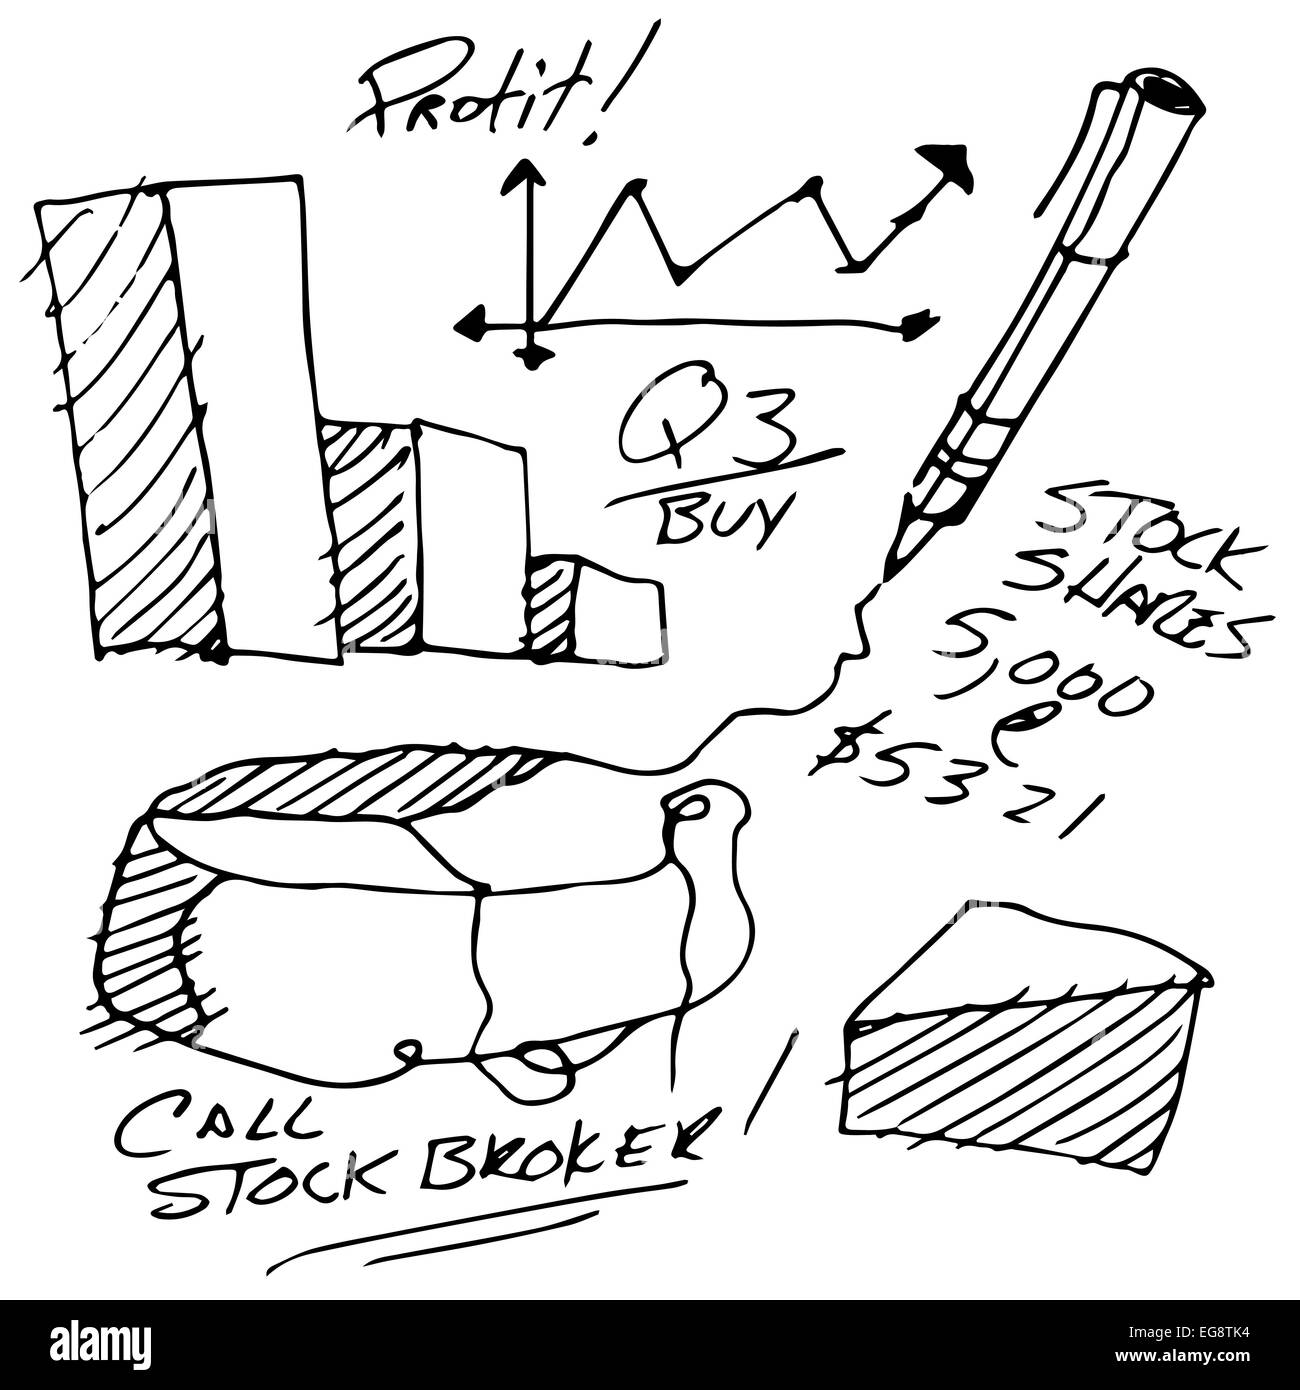 An image of stock market notes. - Stock Image